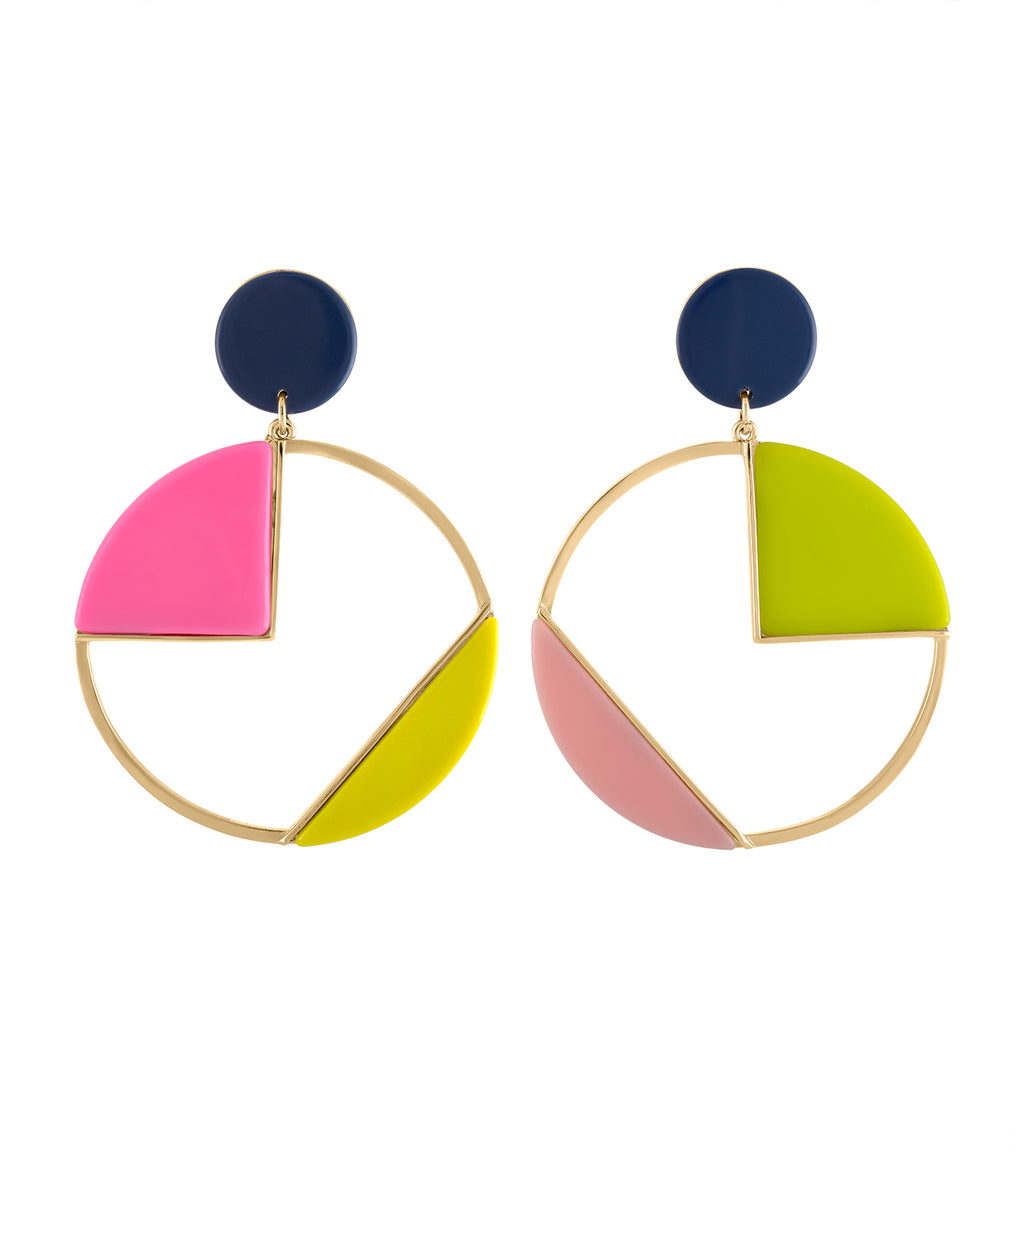 CIRCLE OF COLOR CLIP EARRING | CIRCLE OF COLOR CLIP EARRING